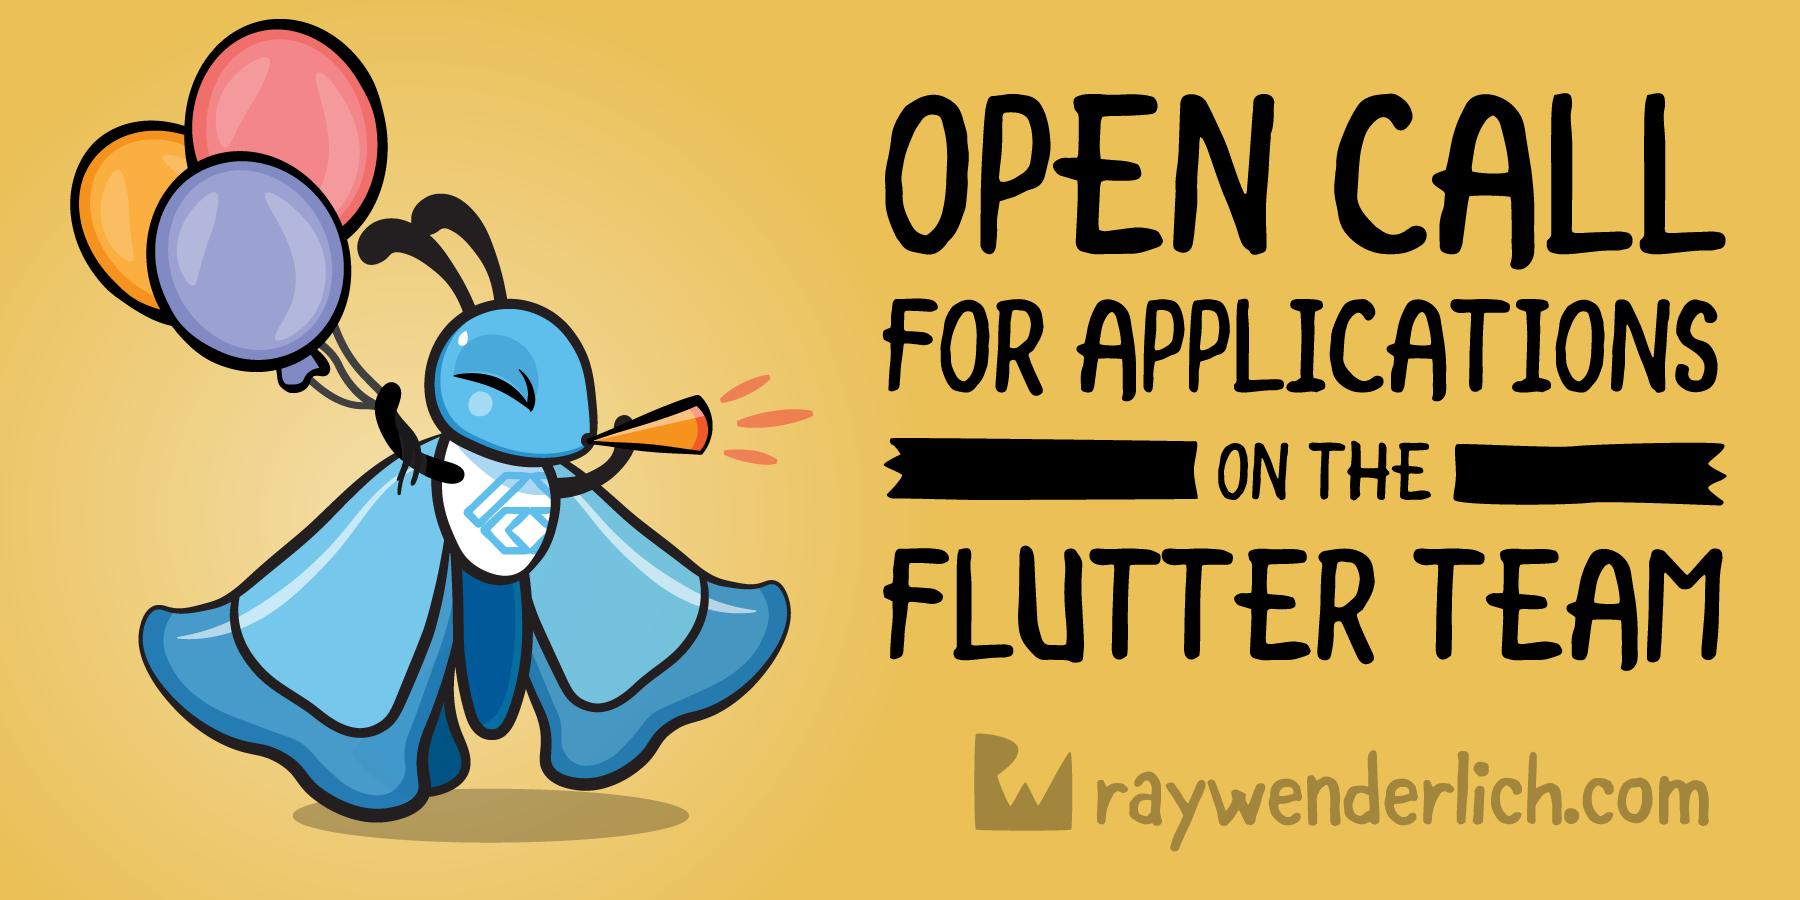 Open Call for Applications on the Flutter Team [FREE]